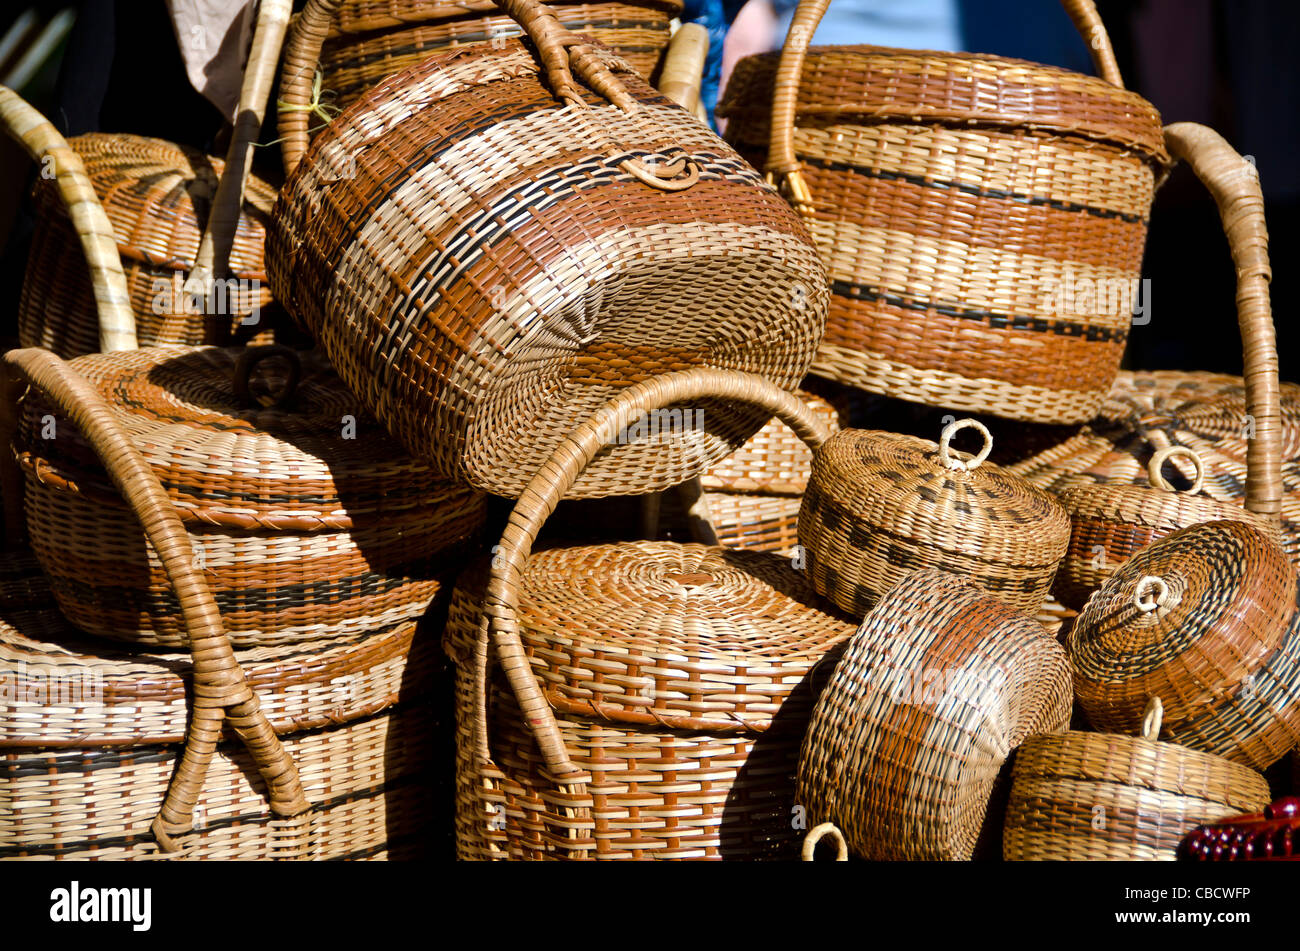 Traditional Basket Making : Dominica carib indian traditional woven baskets stock